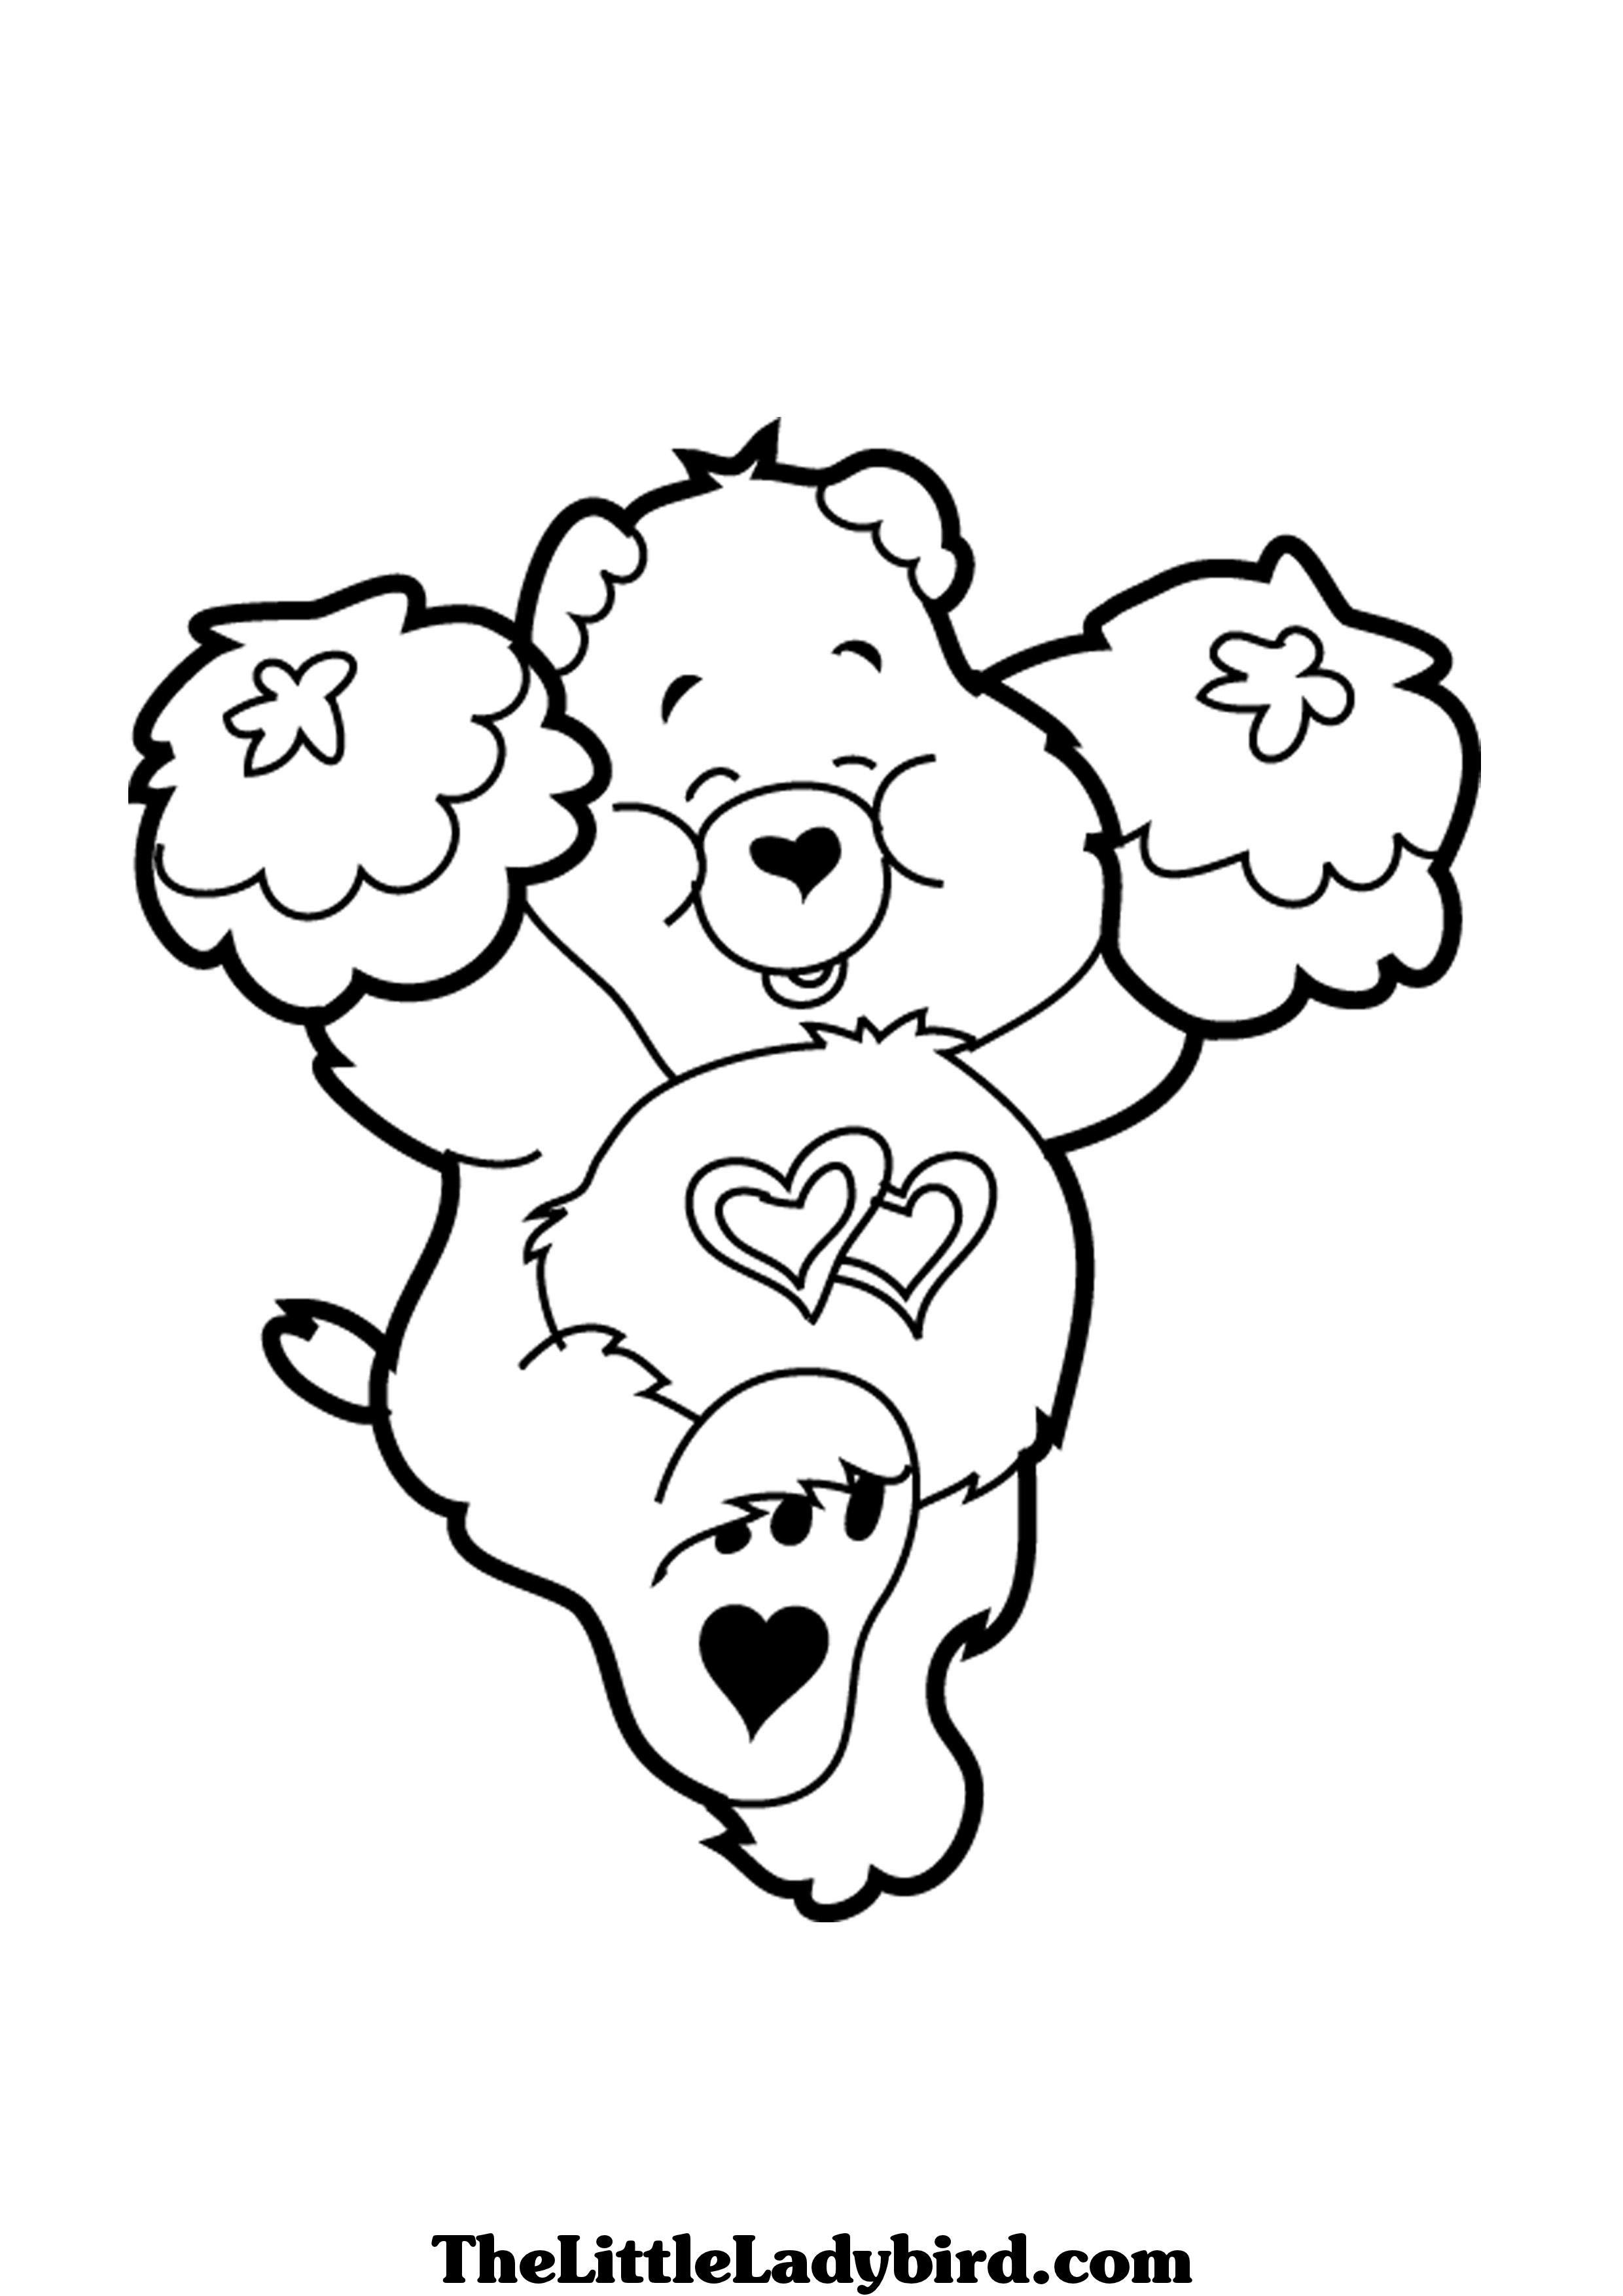 Care Bears Carry Interest | Care Bears Coloring Pages | Pinterest ...